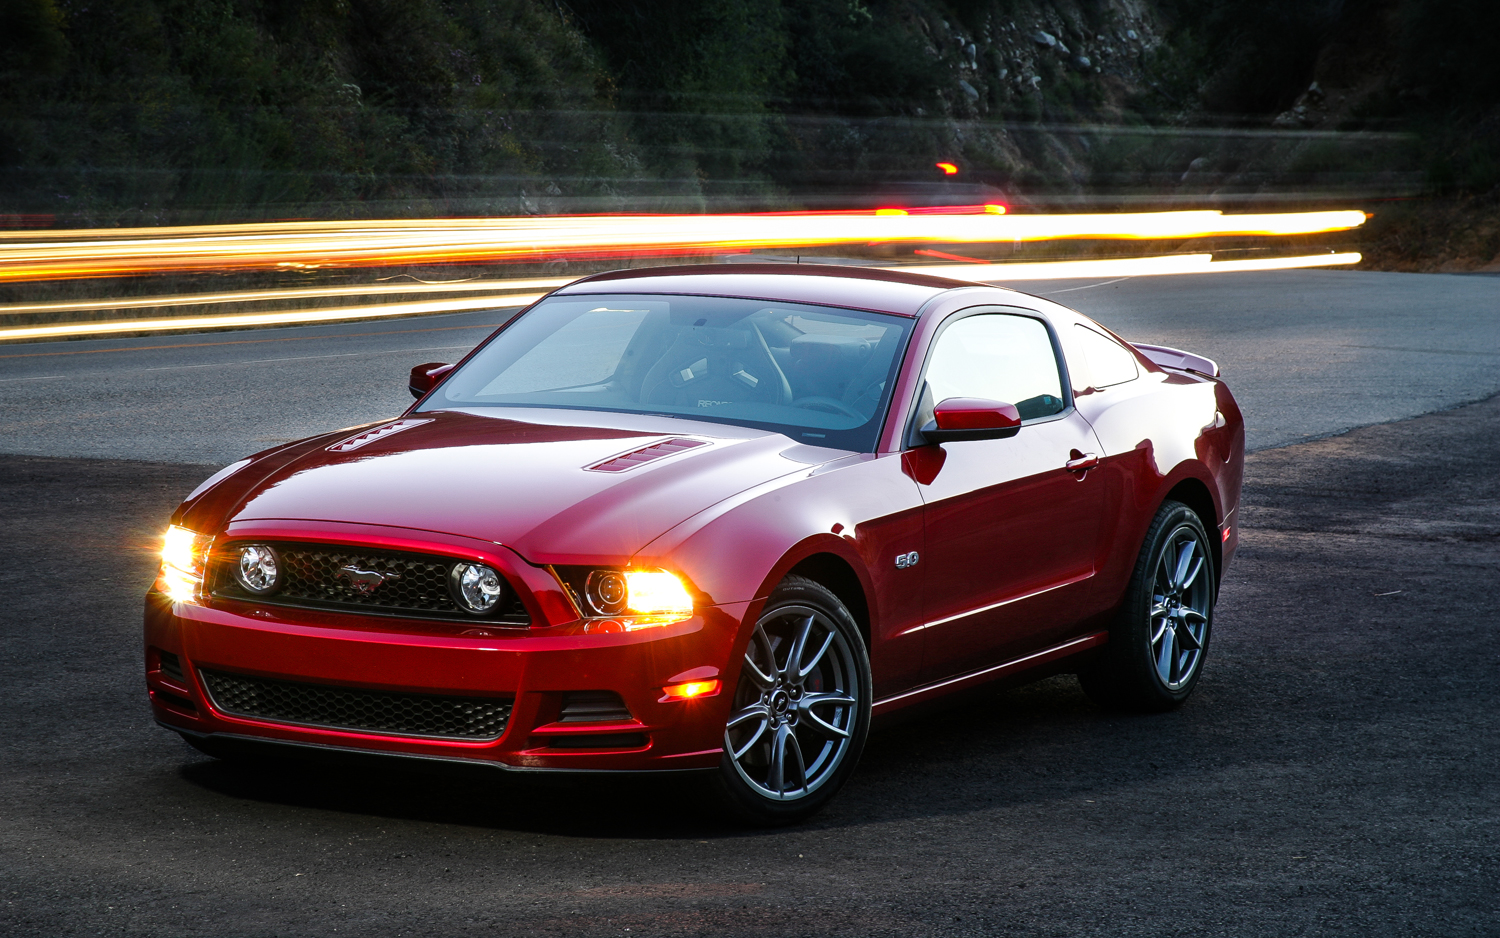 Ford Mustang GT Premium #5